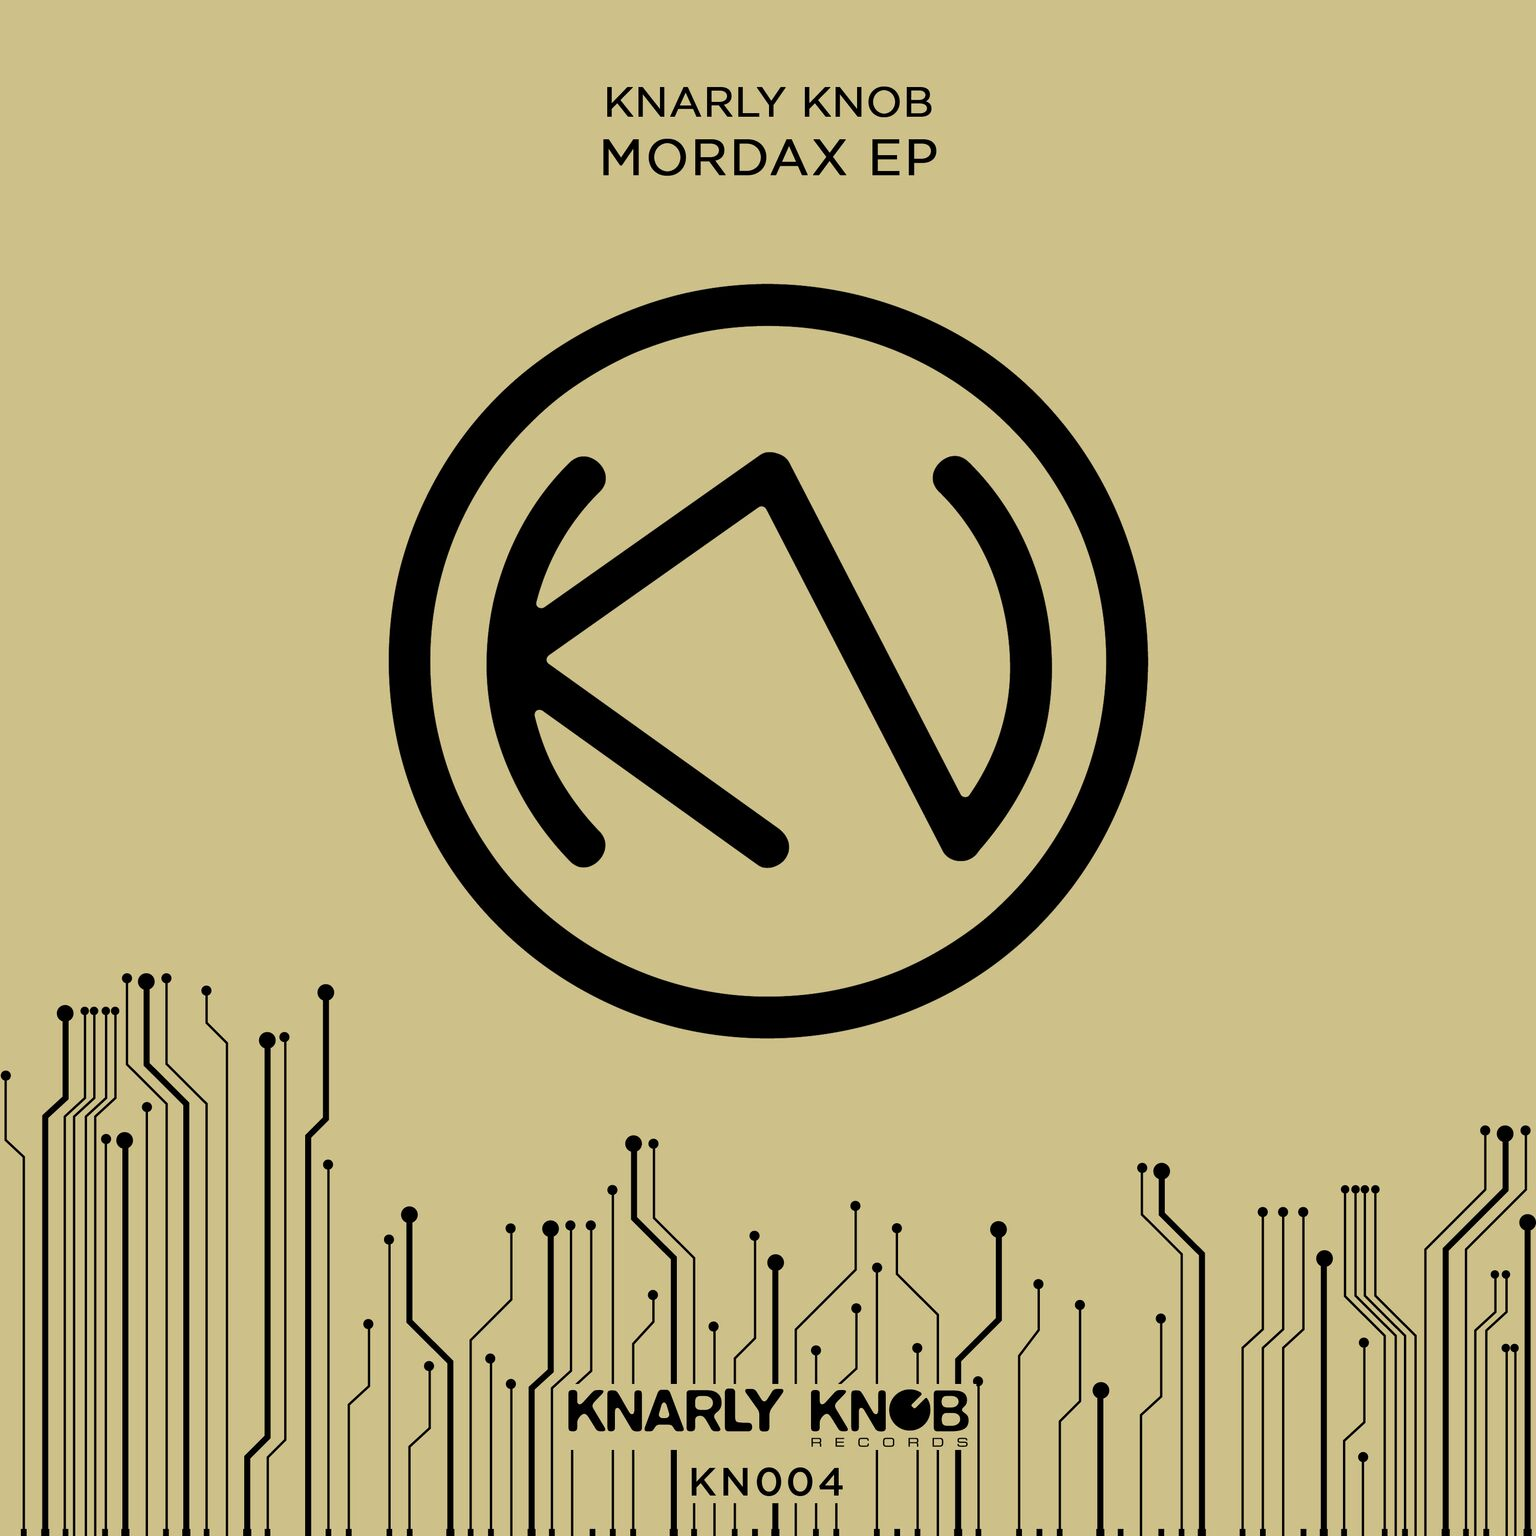 Knarly Knob - Mordax EP [Knarly Knob Records]